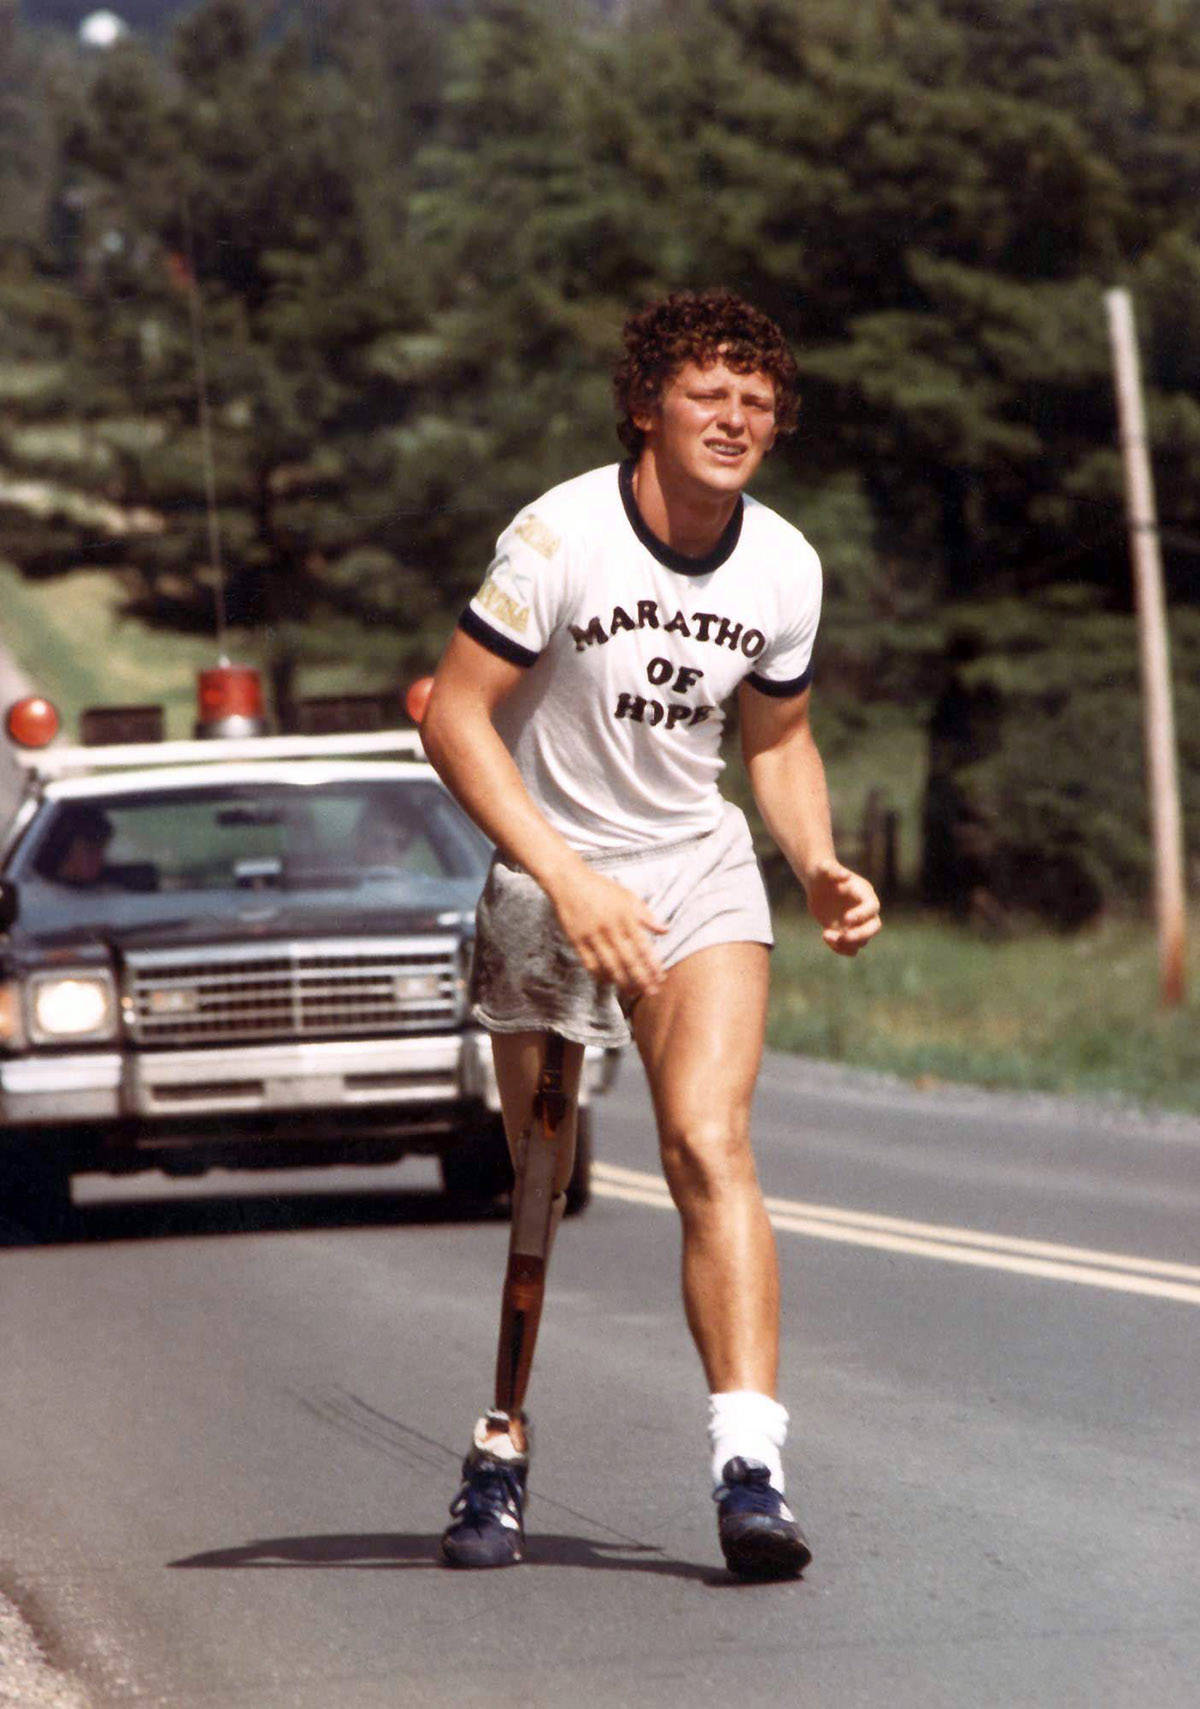 Marathon of Hope runner Terry Fox is shown in a 1981 file photo. The Terry Fox Research Institute has launched a new national network to bring together leading cancer hospitals and research universities across Canada. THE CANADIAN PRESS/CP